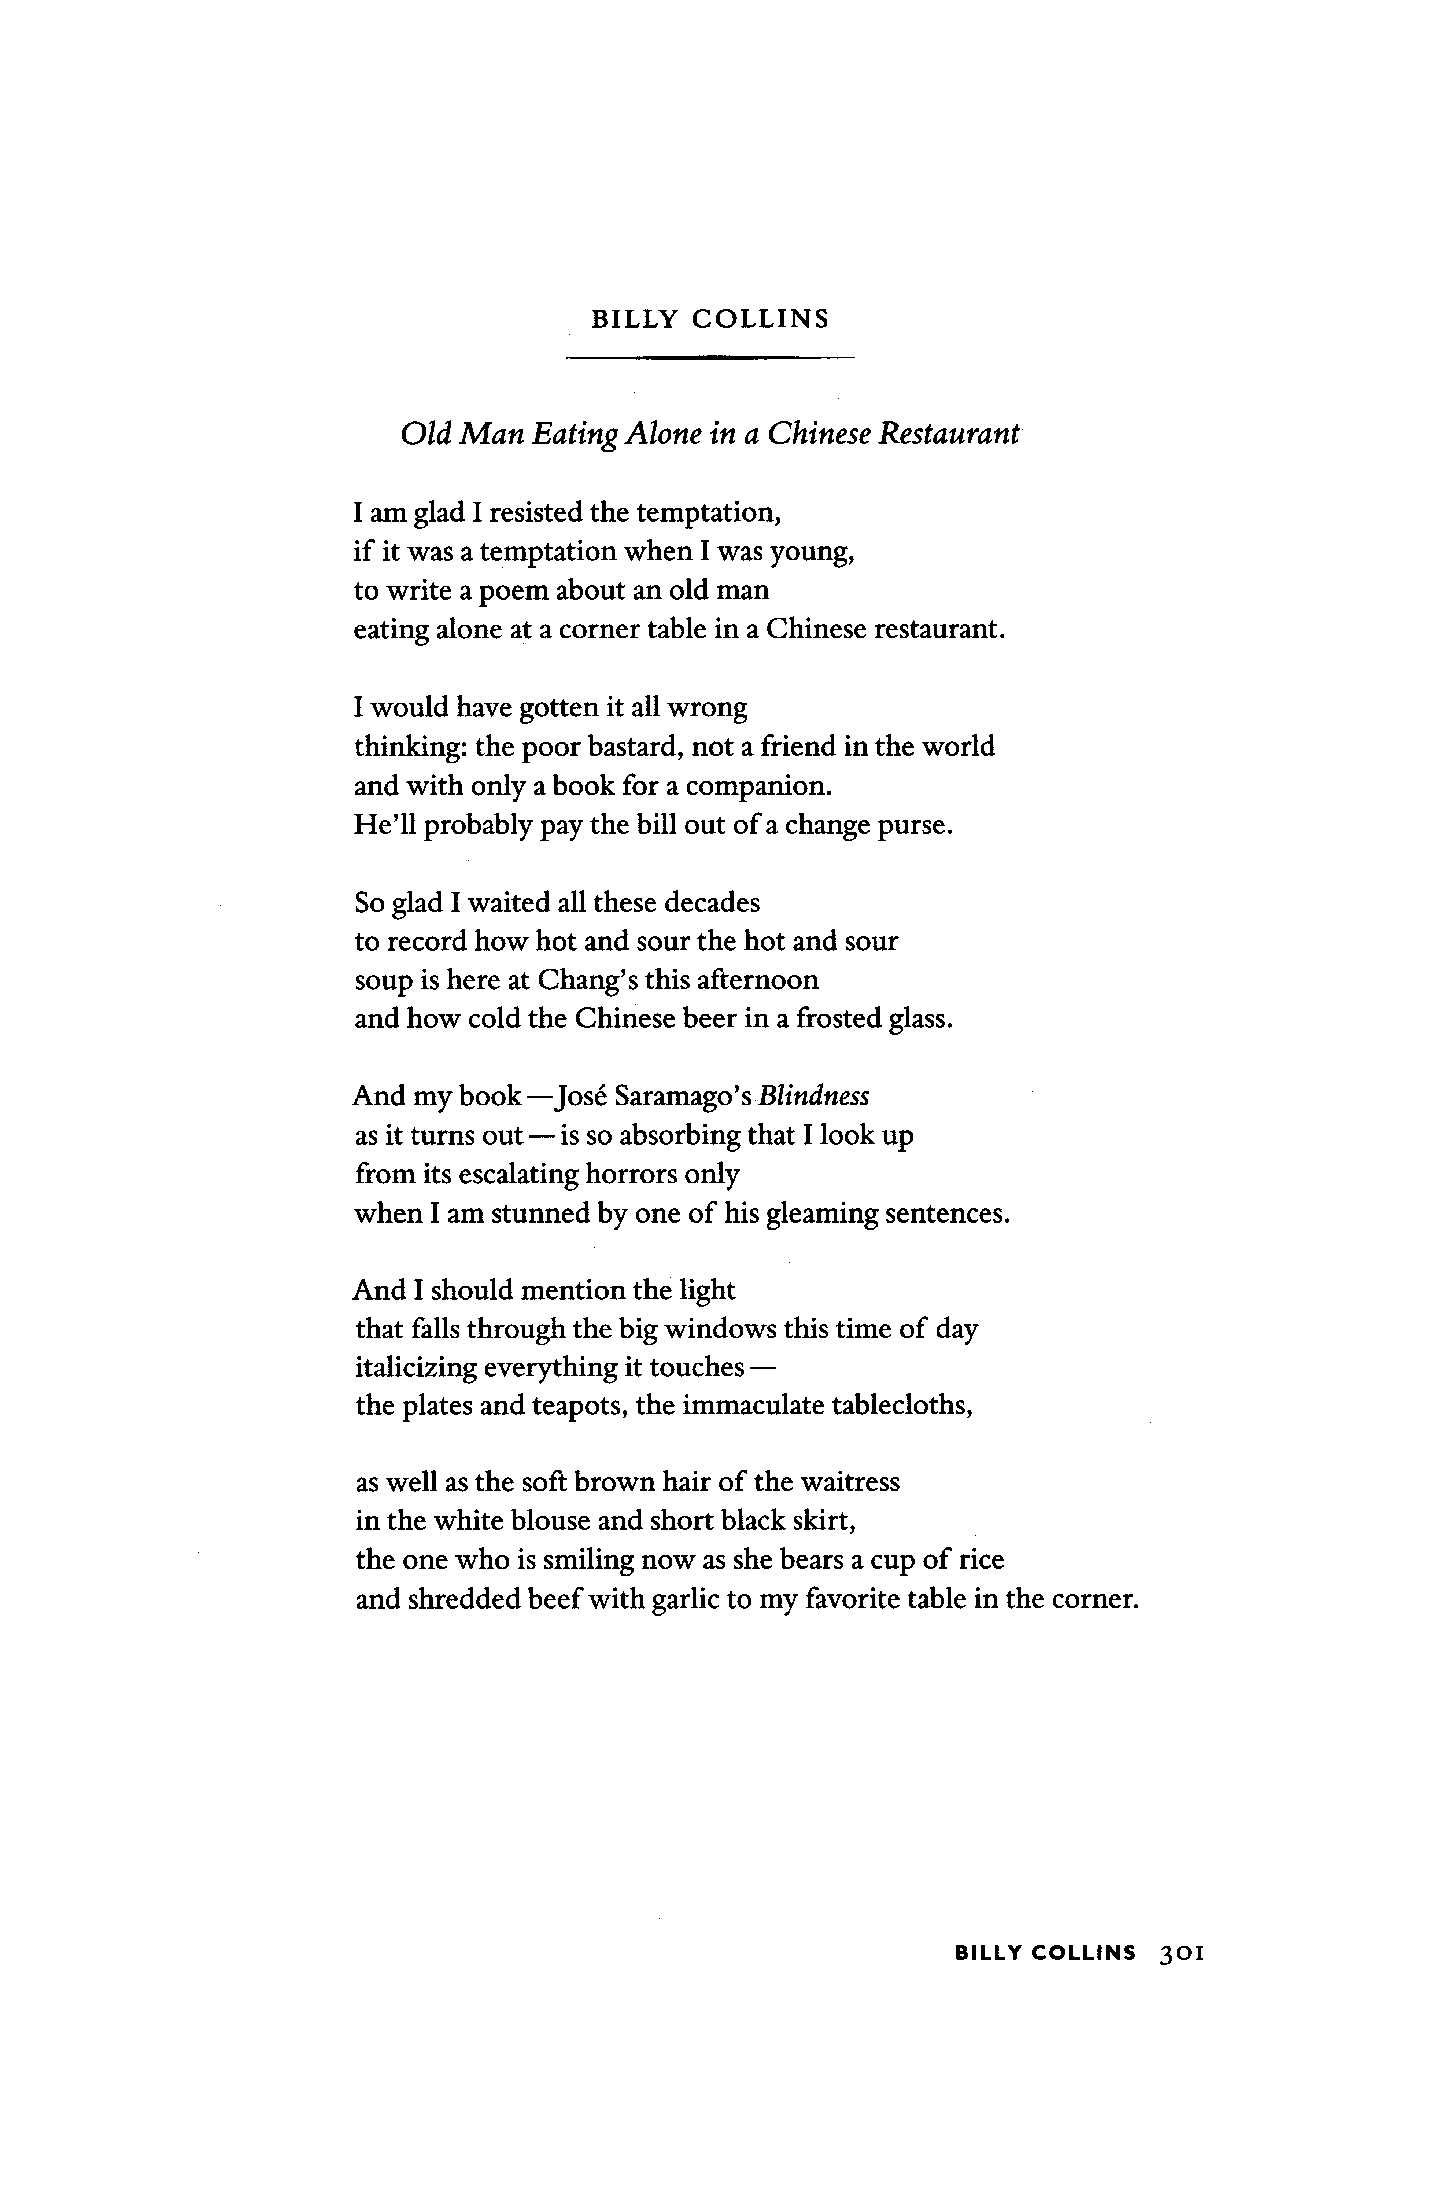 introduction poetry billy collins essay